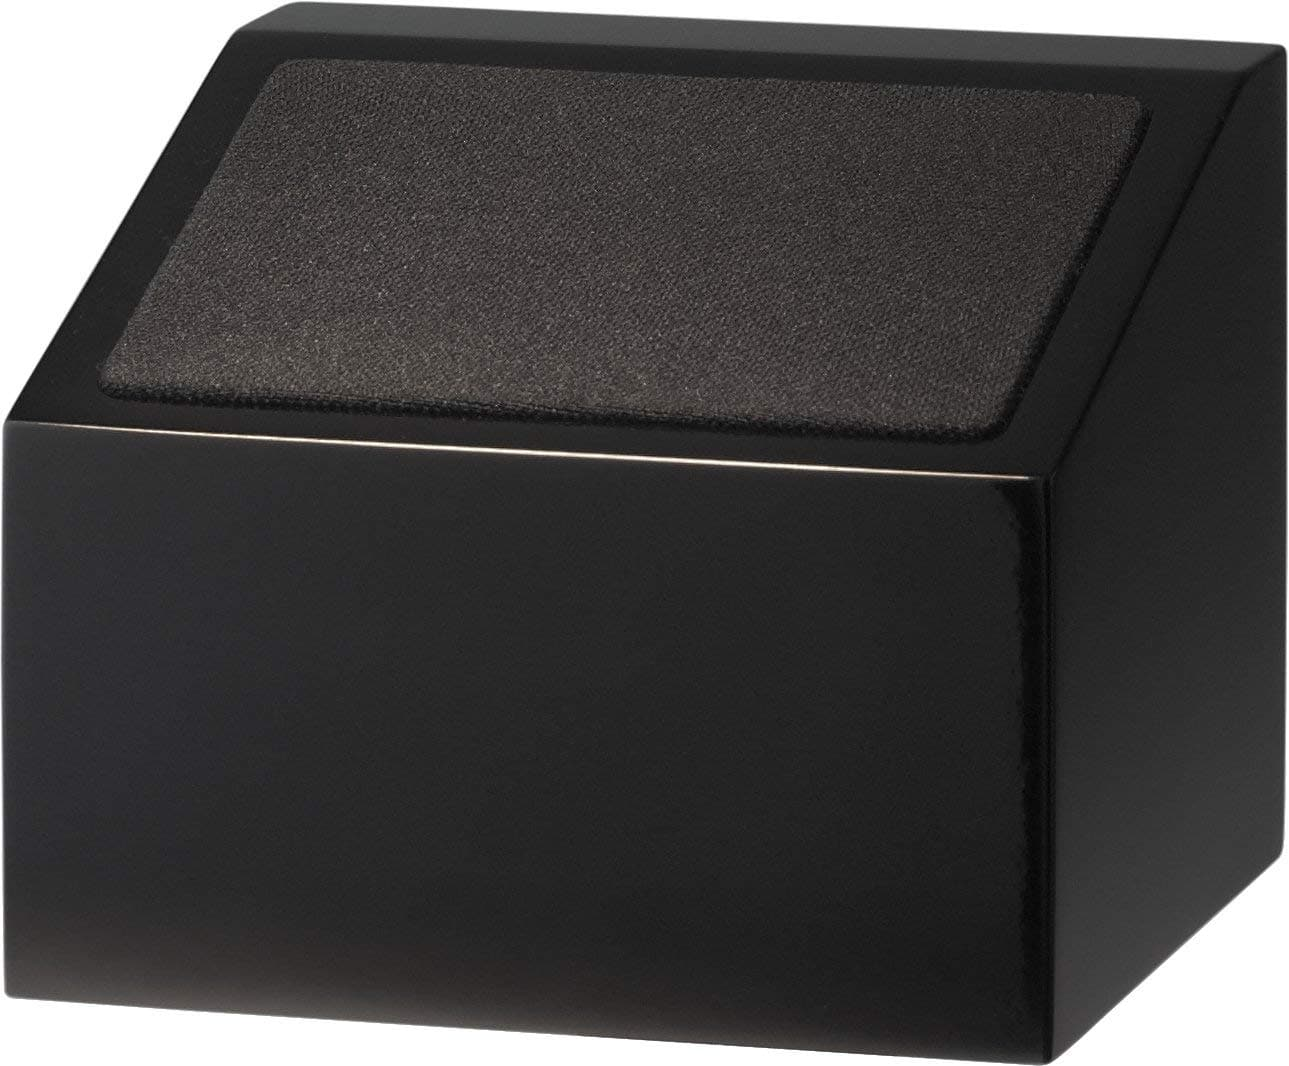 NHT Atmos Mini Add-On Speaker for Dolby Atmos - High Gloss Black - $66.48 Each w/free shipping @ amazon